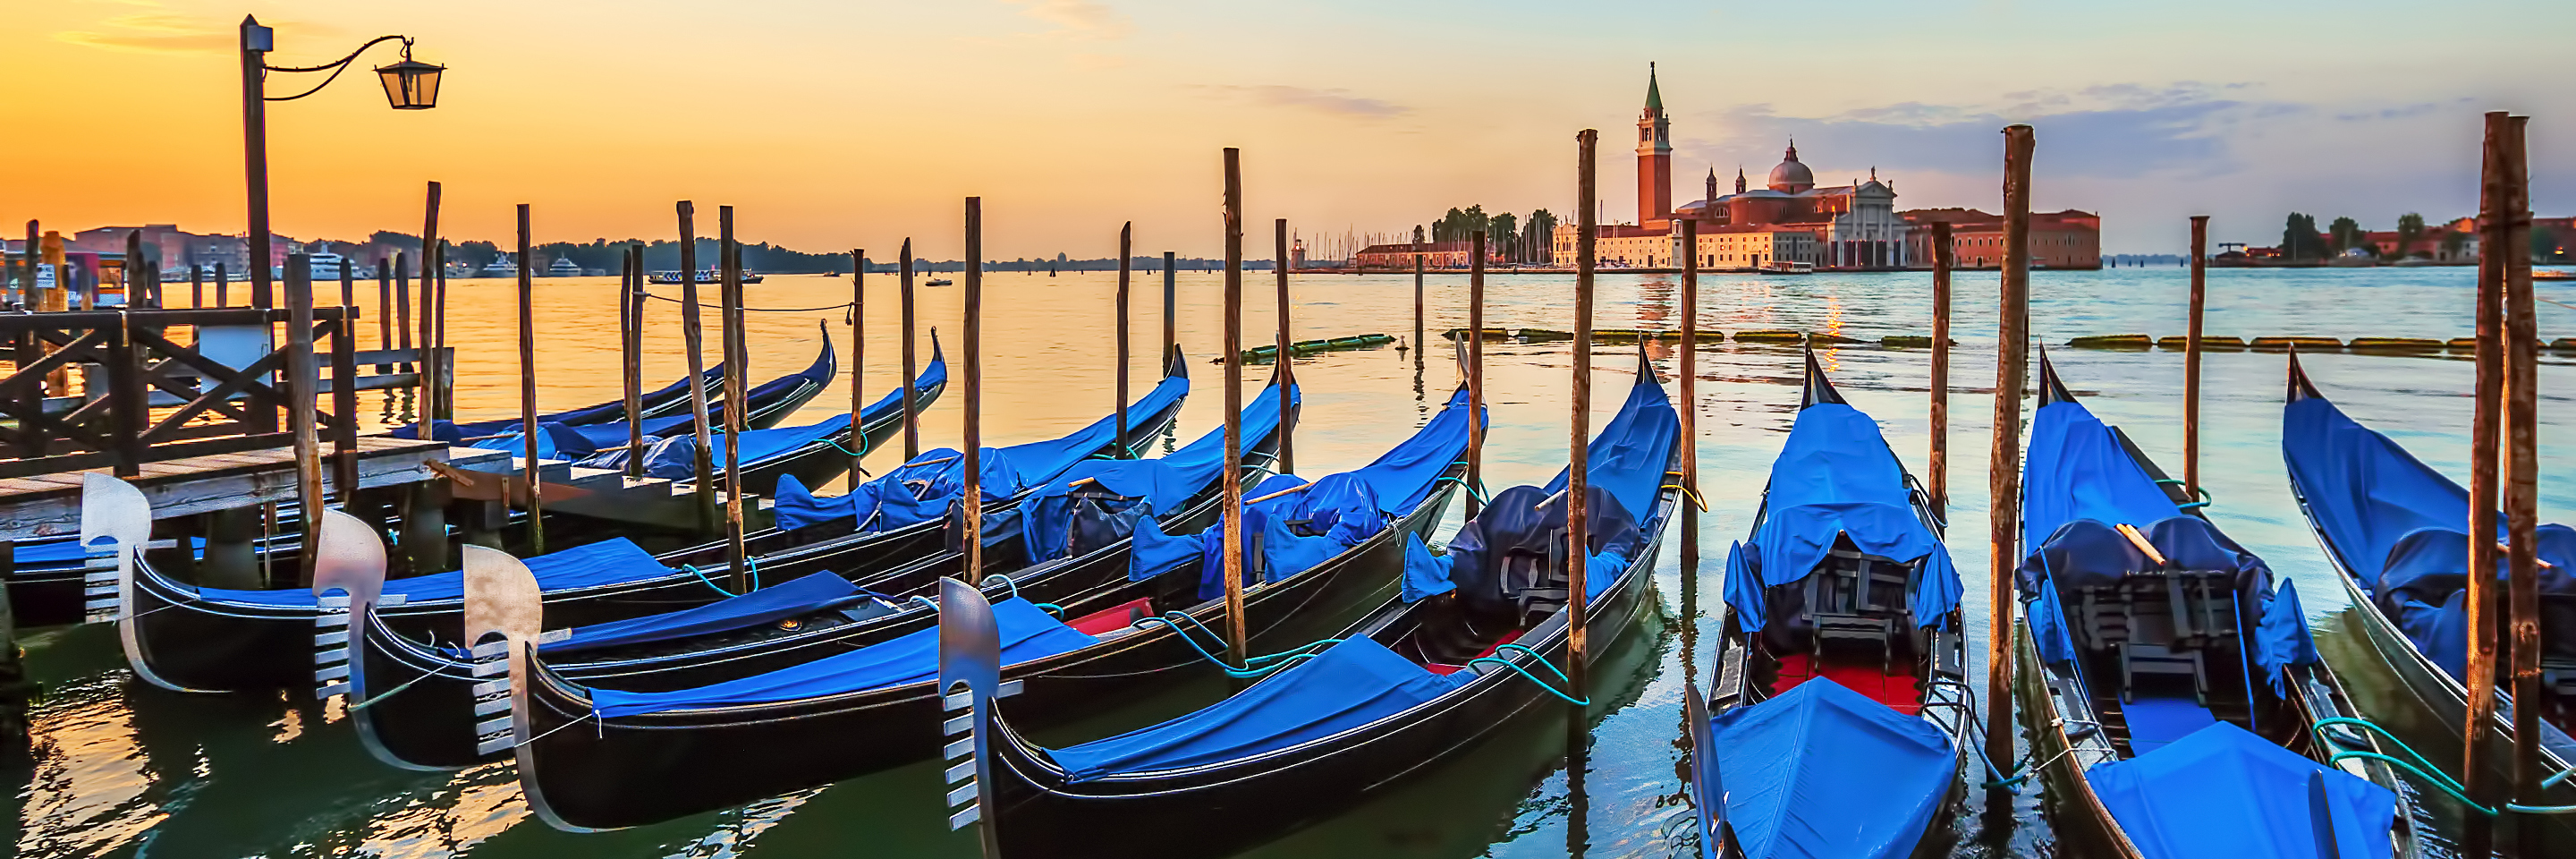 Burgundy & Provence with 2 Nights in Nice, 2 Nights in   Paris, 3 Nights in Venice & 3 Nights in Rome (Northbound)